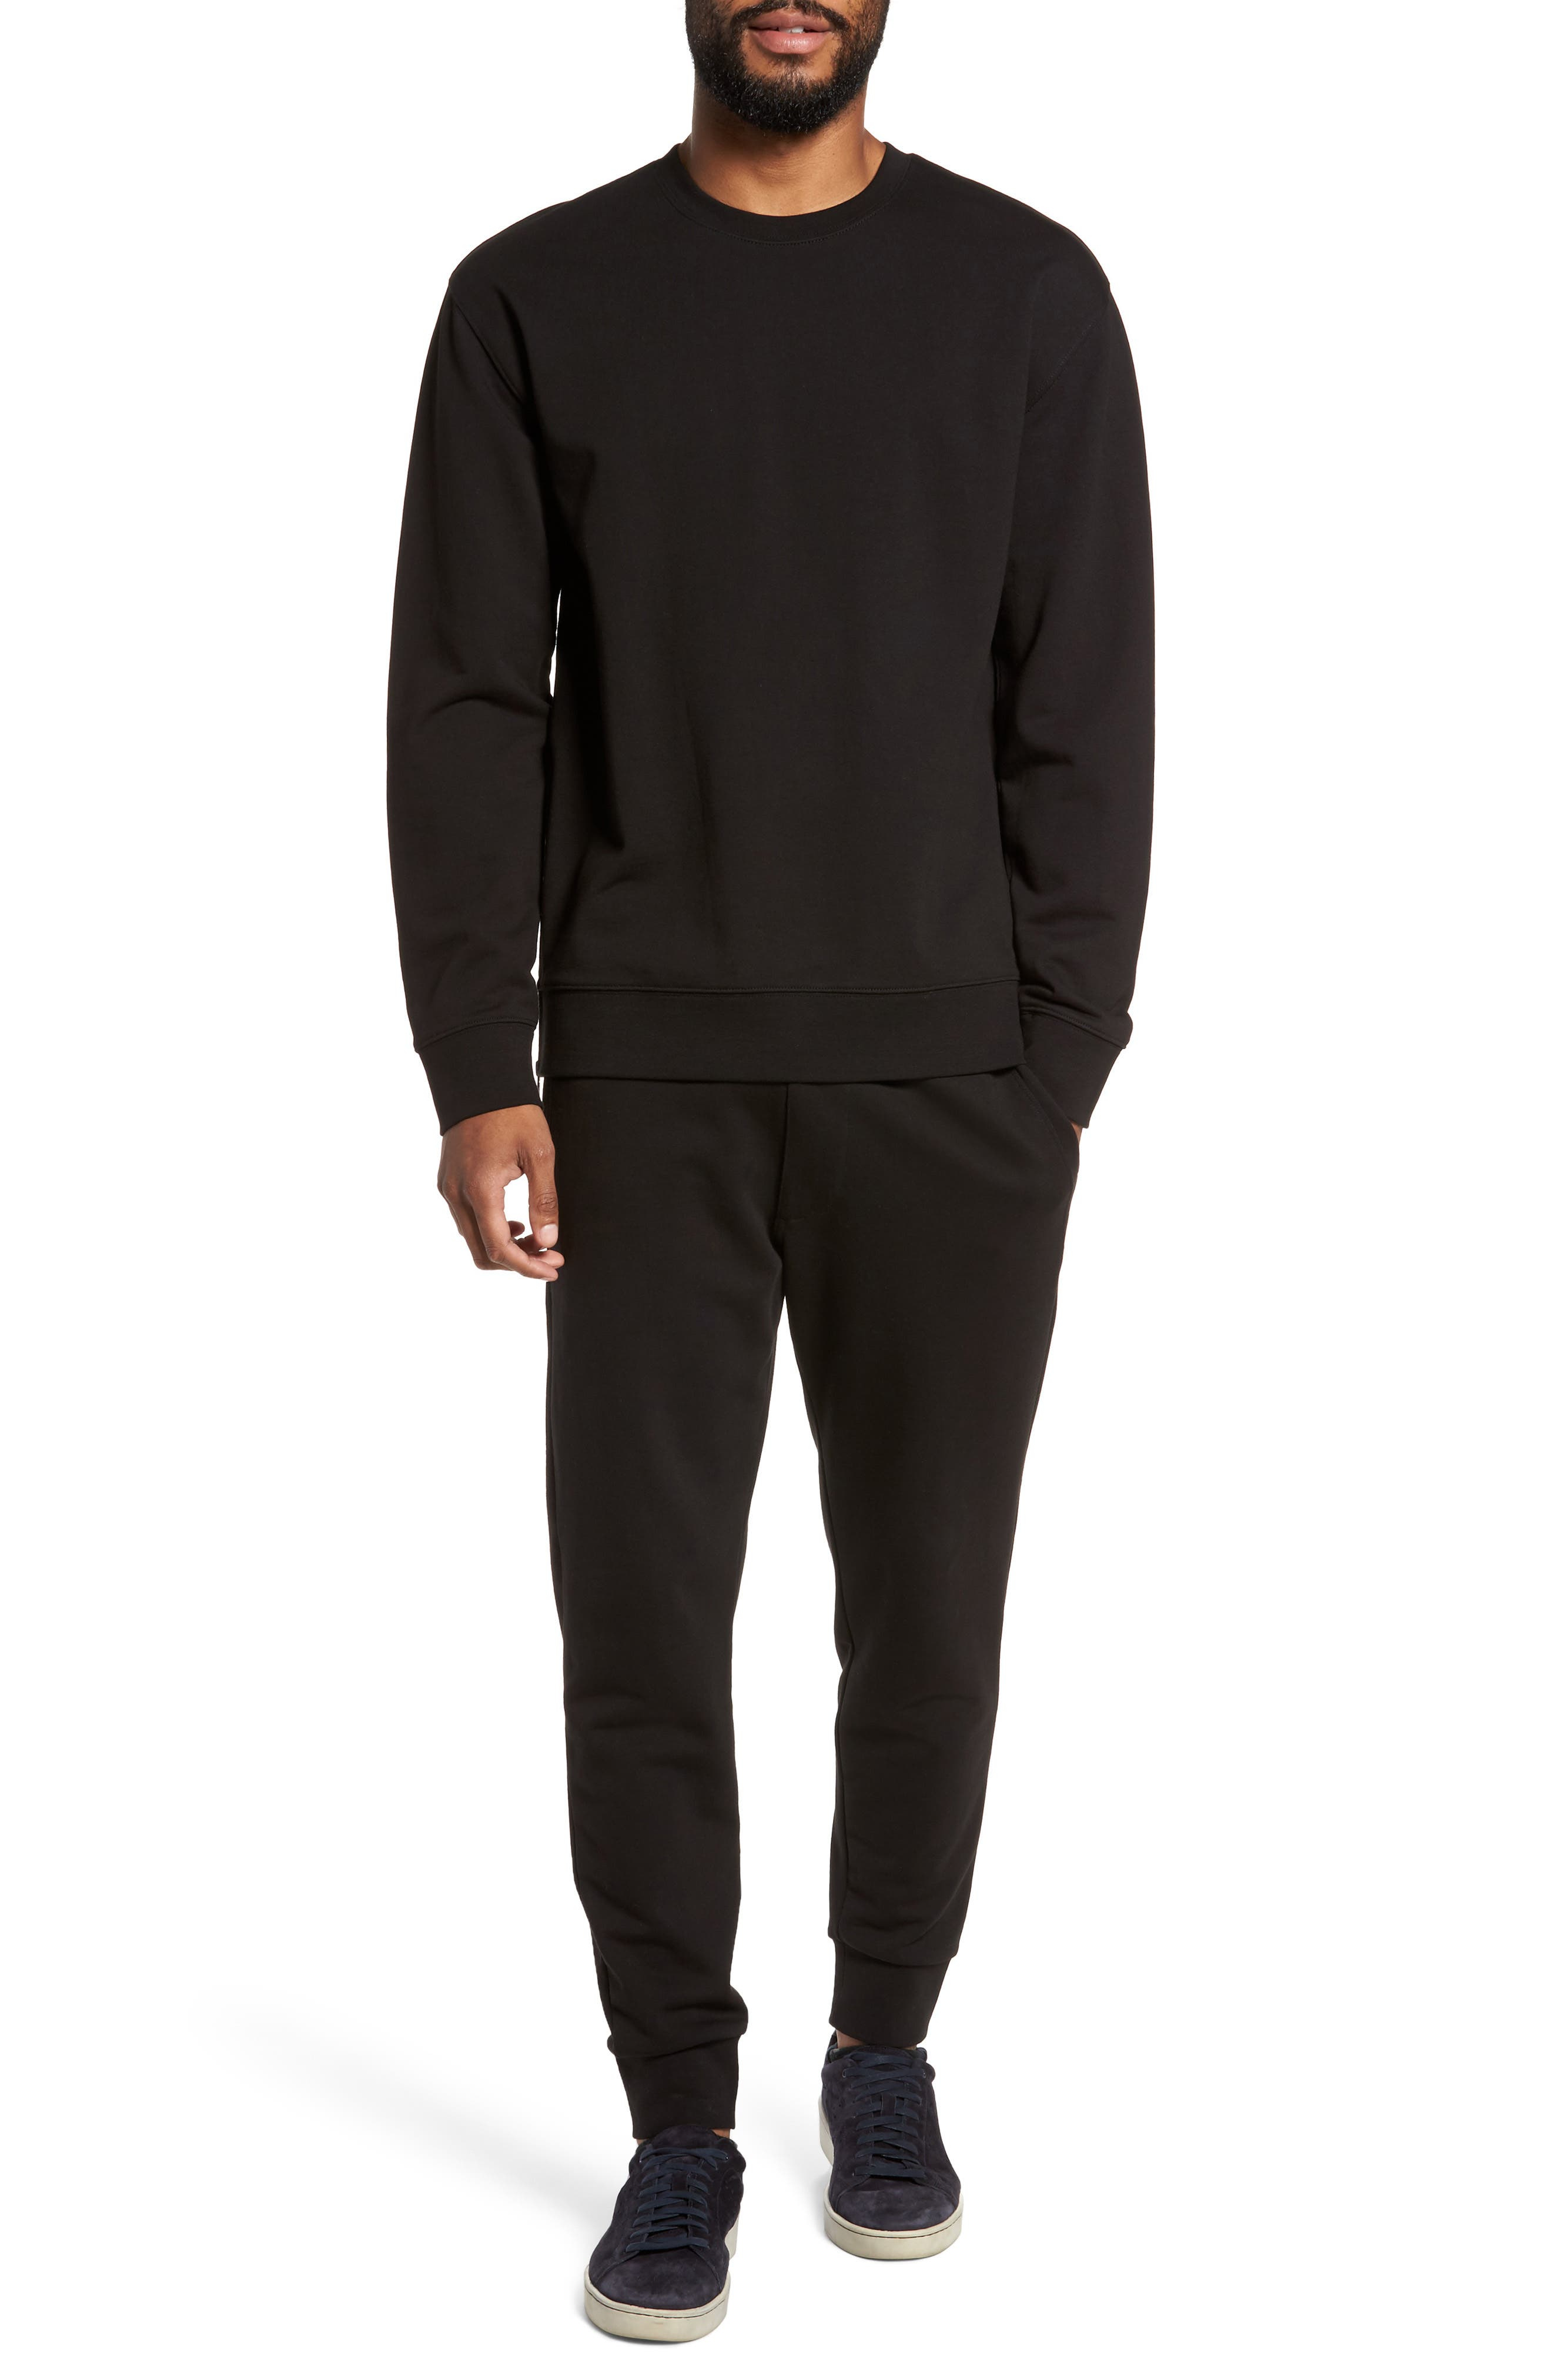 Cotton Sweatpants,                             Alternate thumbnail 7, color,                             Black